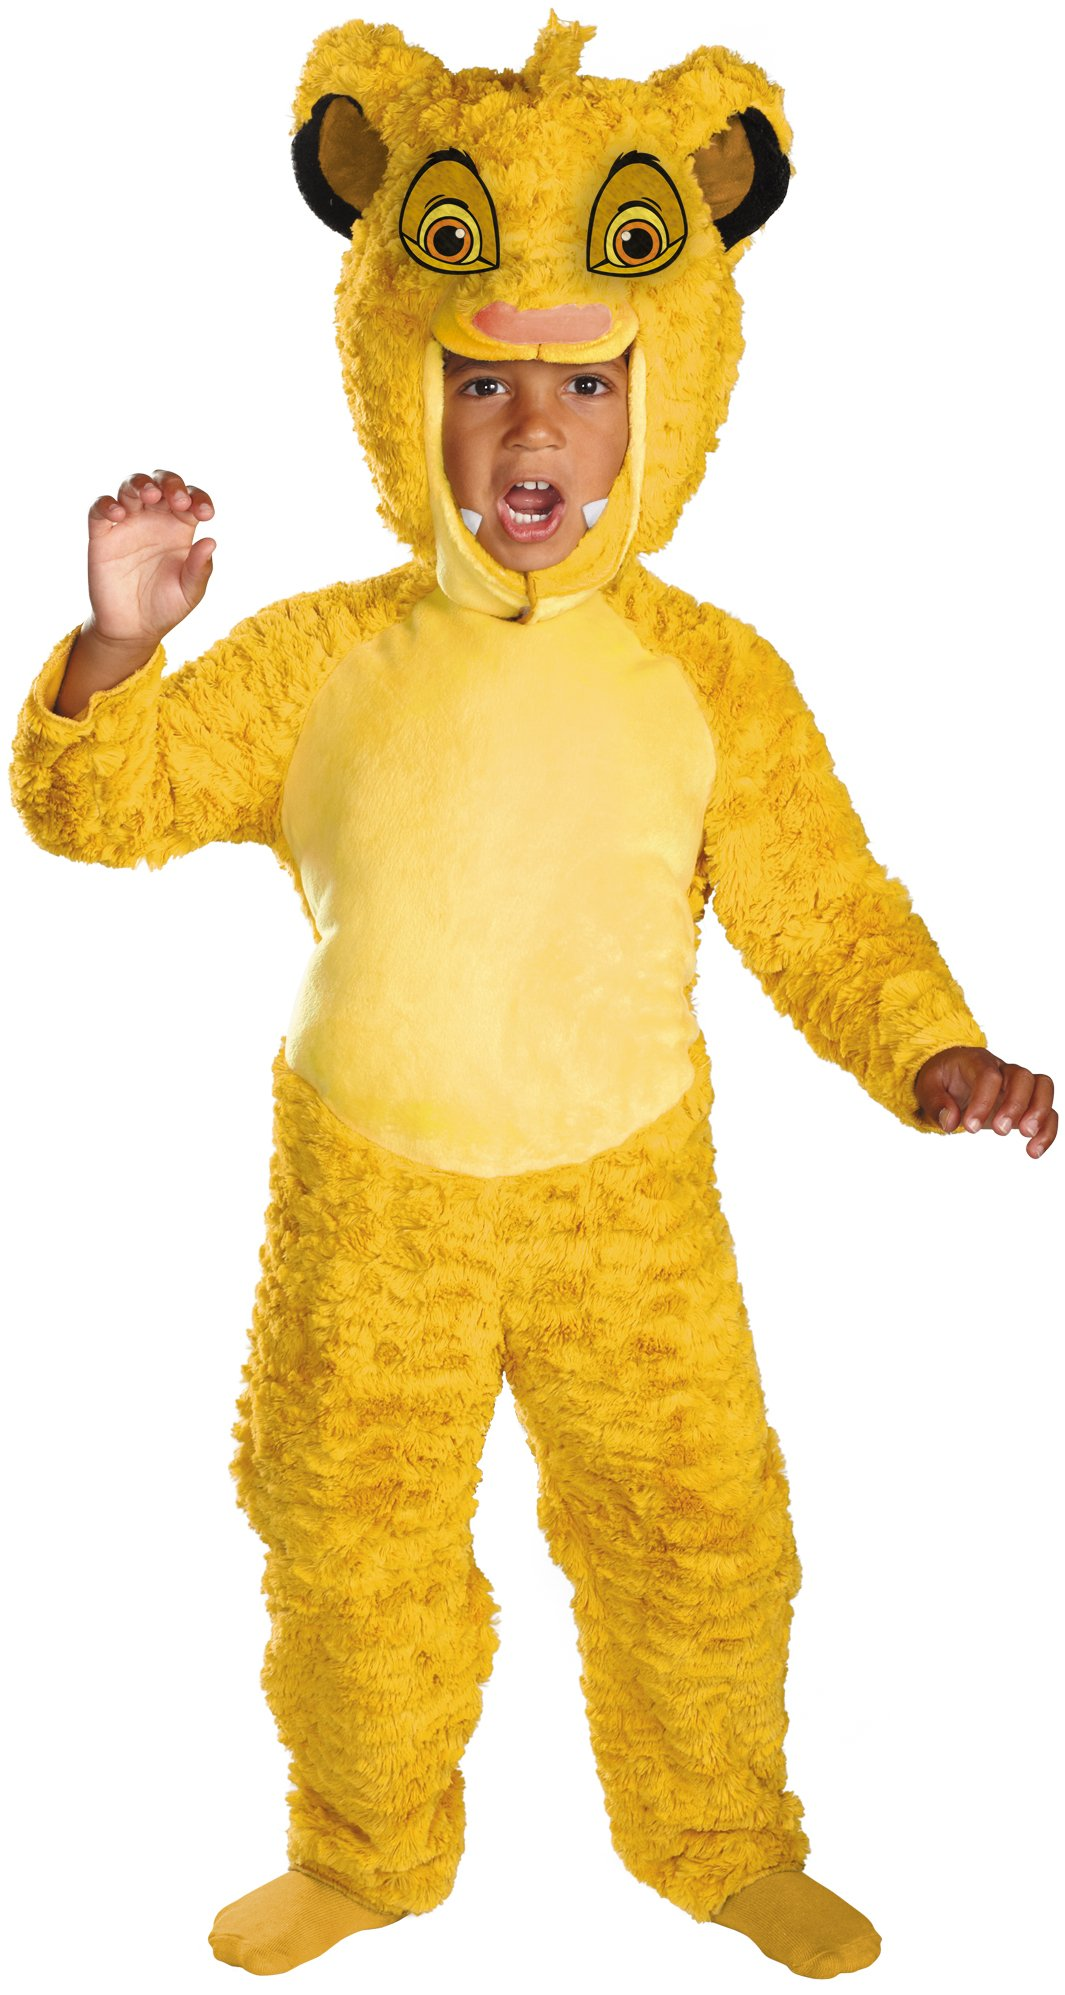 The Lion King - Simba Toddler / Child Costume